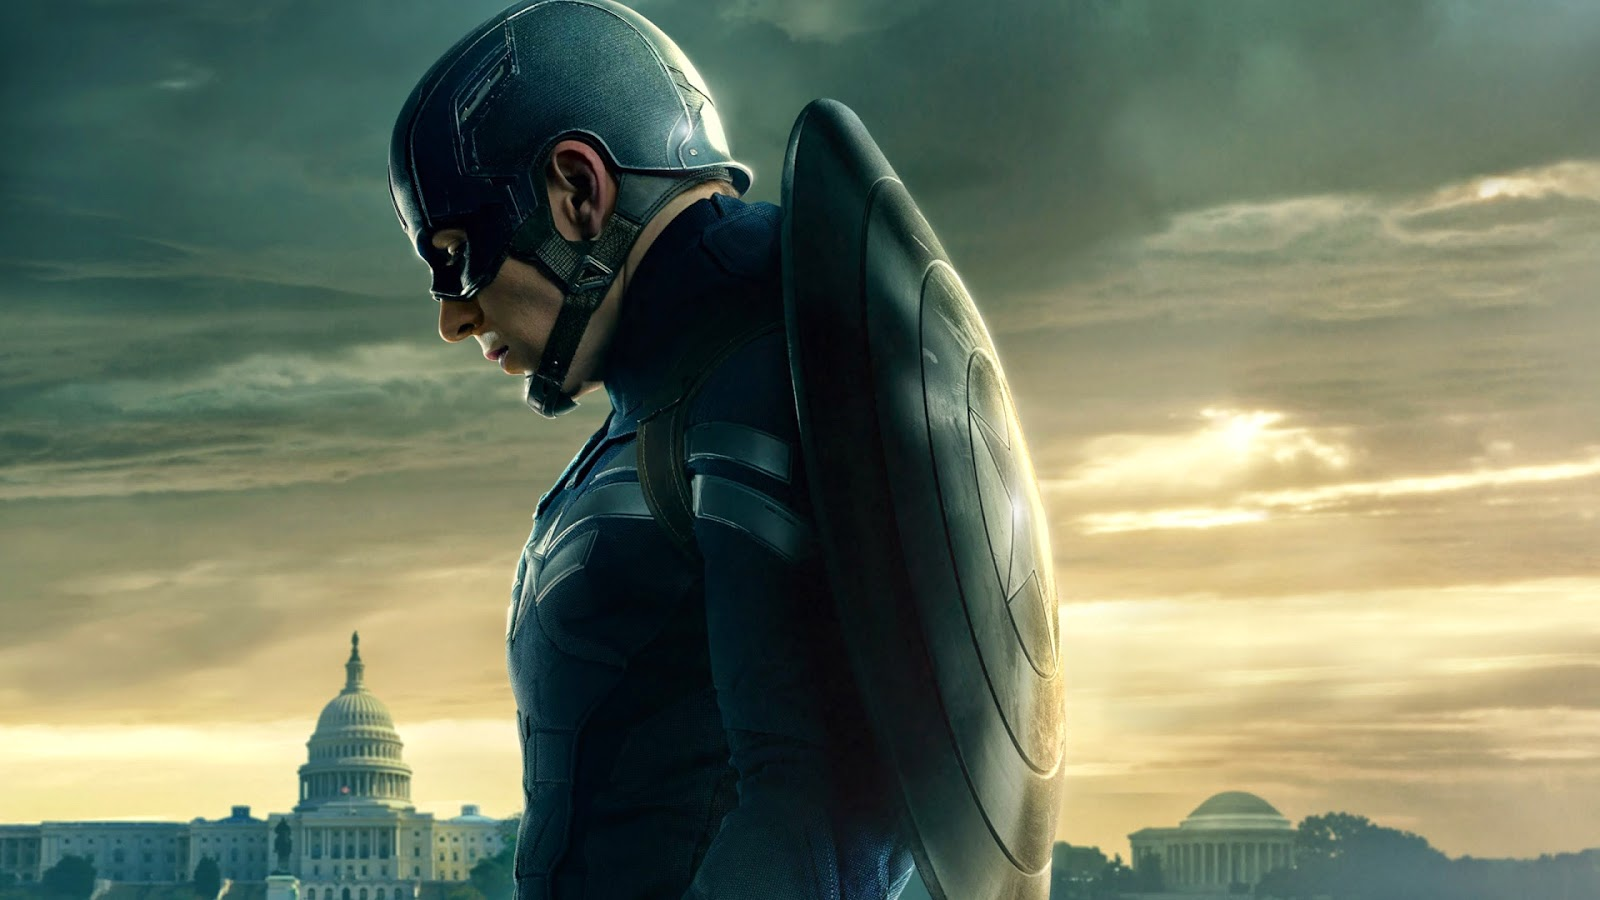 hd wallpapers super herois - photo #22